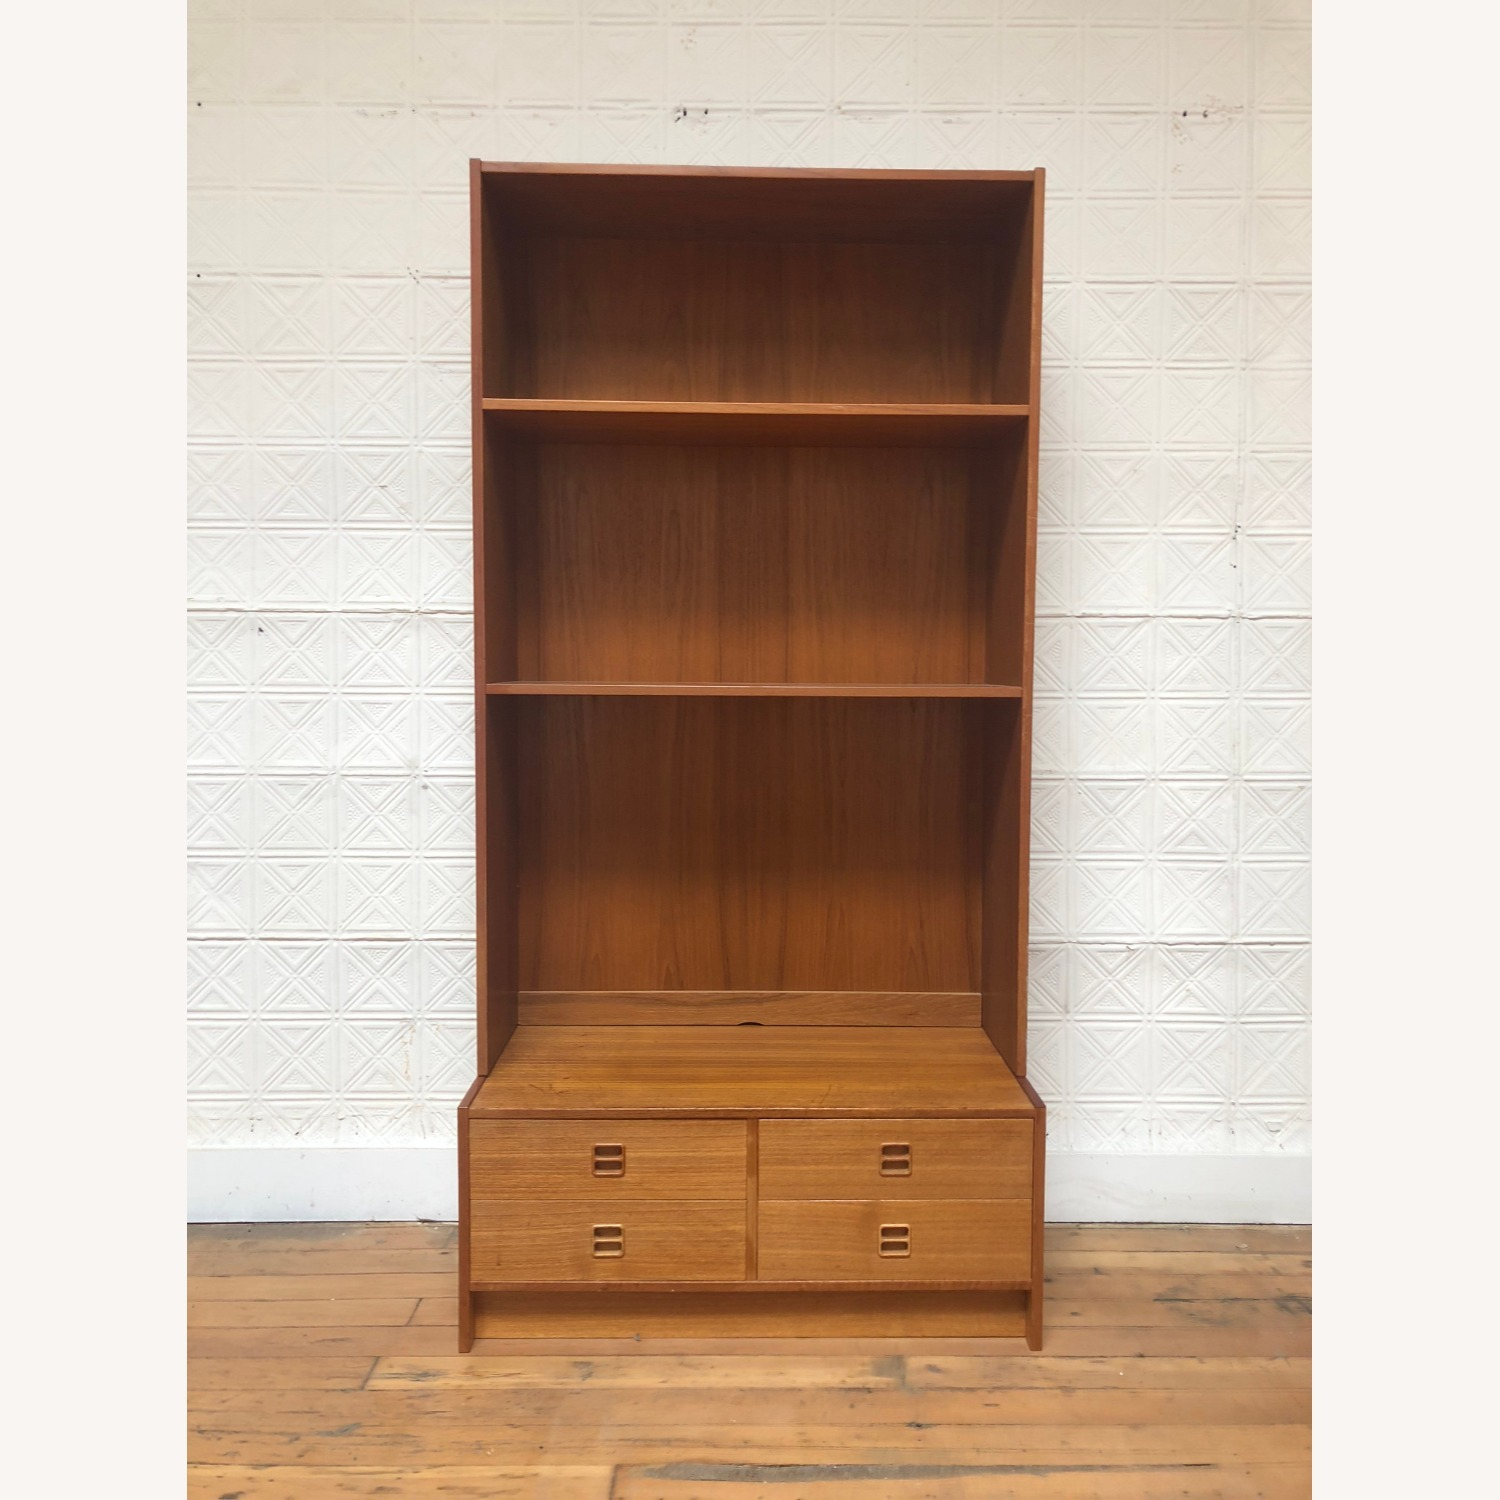 Danish Modern Shelving Unit with Four Drawers - image-2